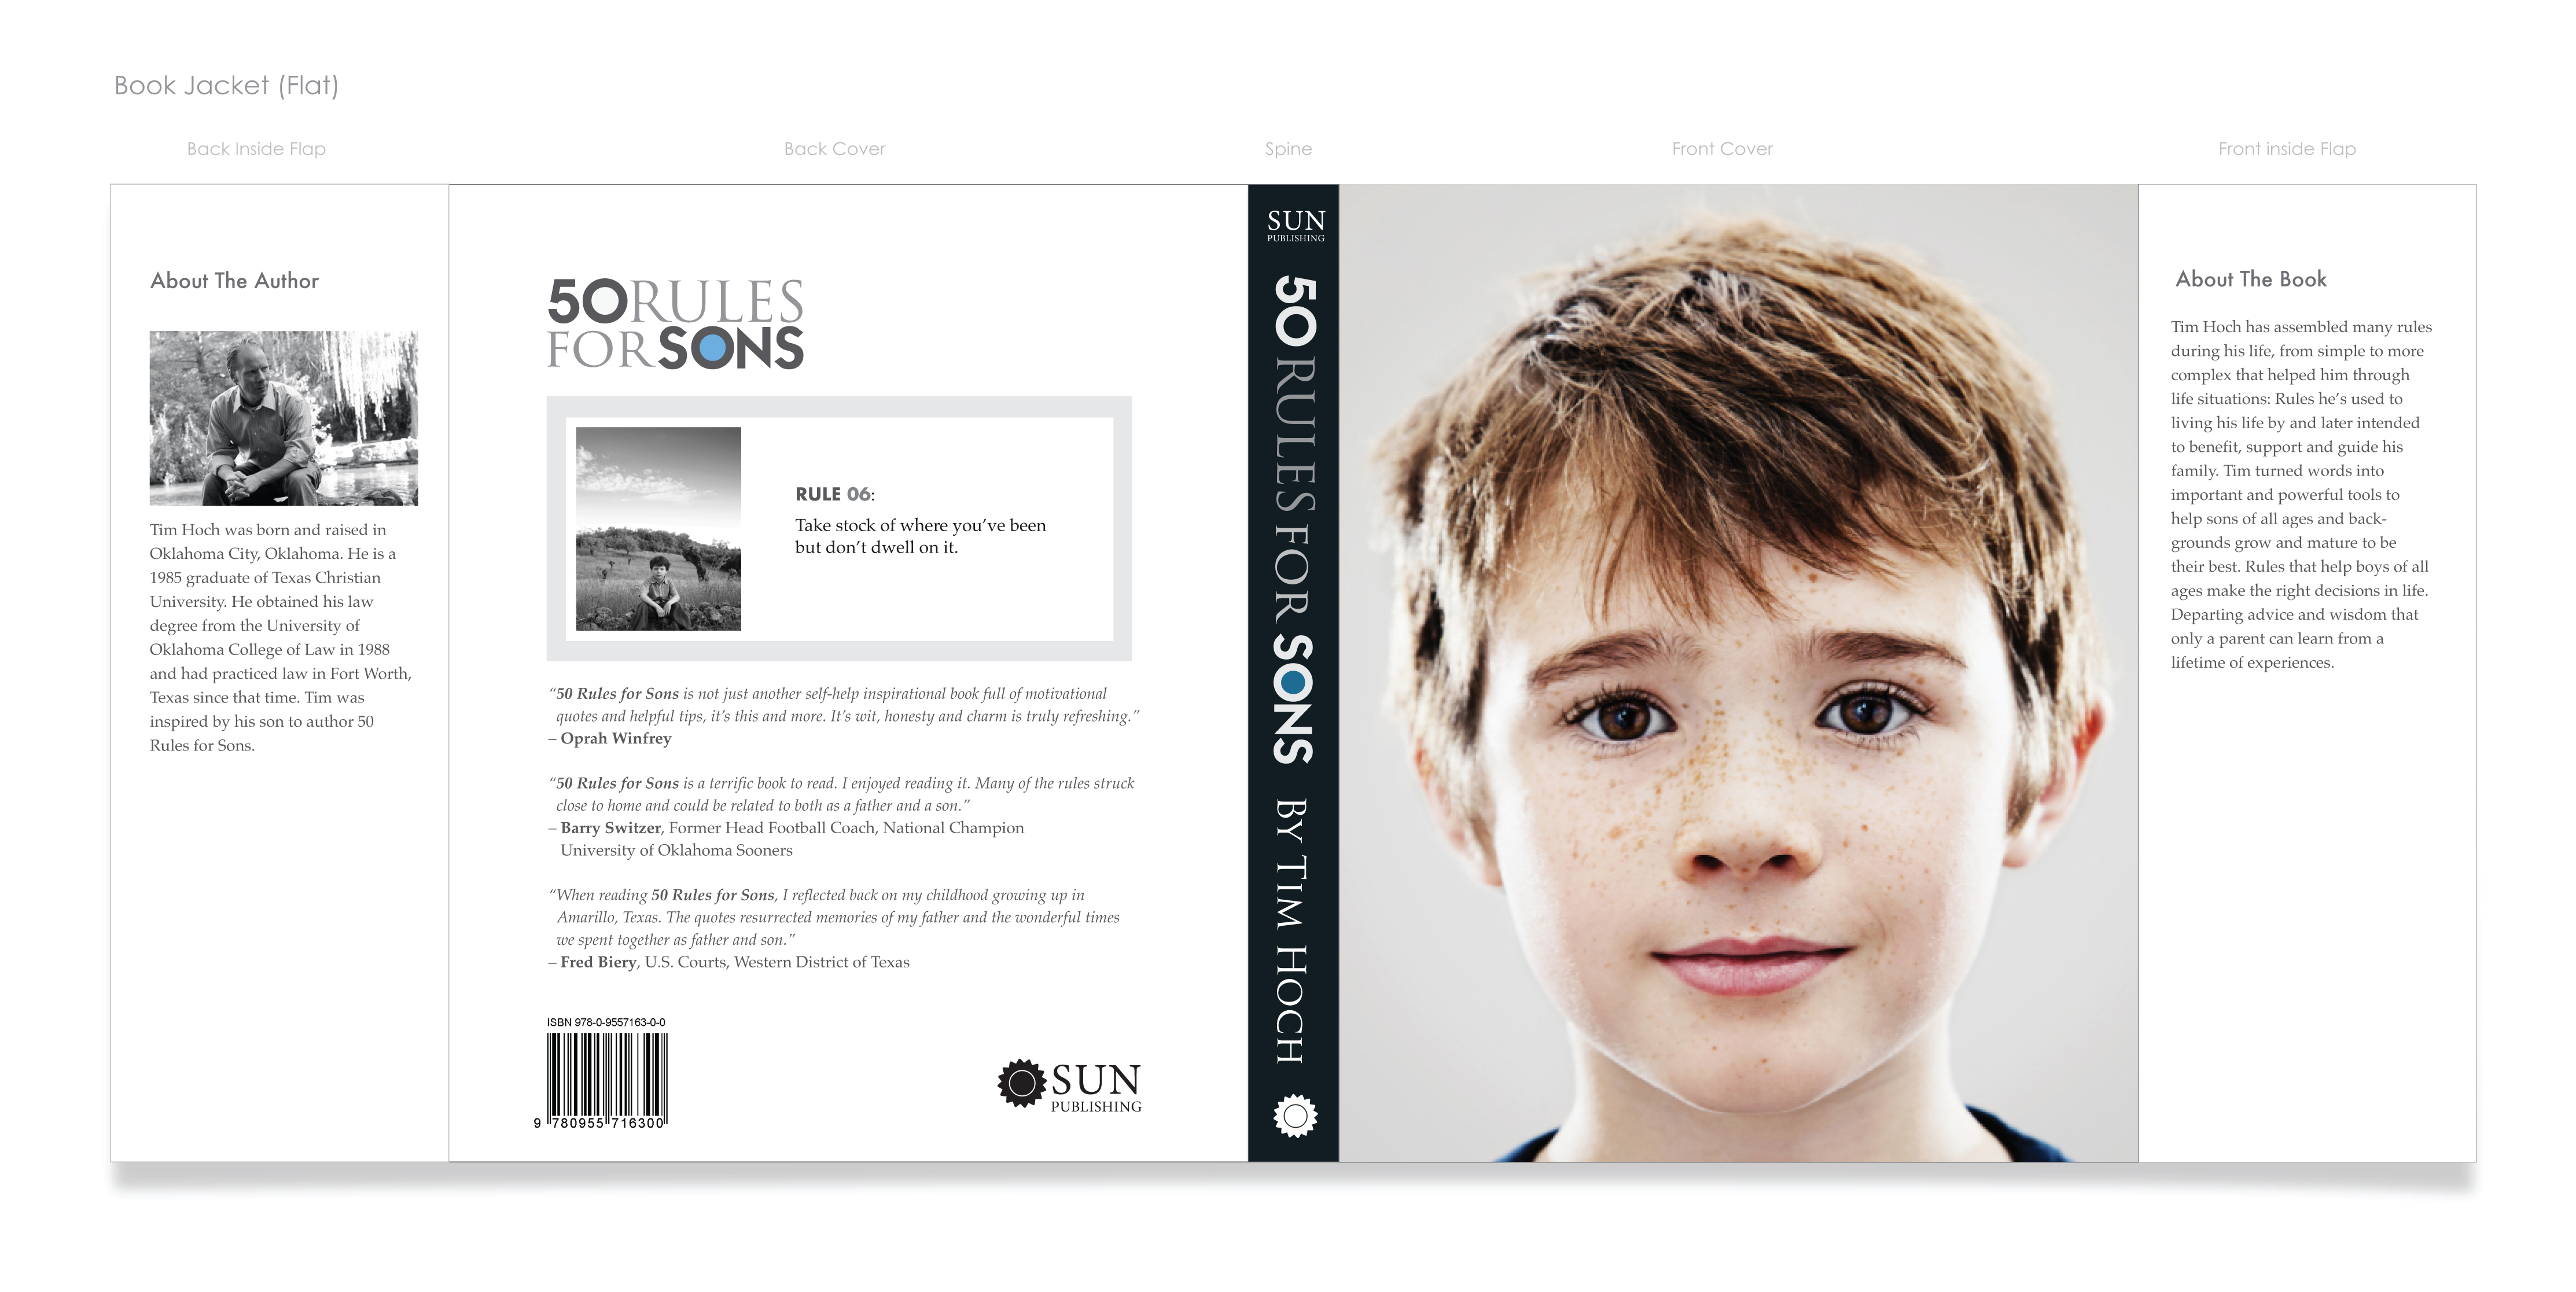 50 Rules For Sons – Book Jacket